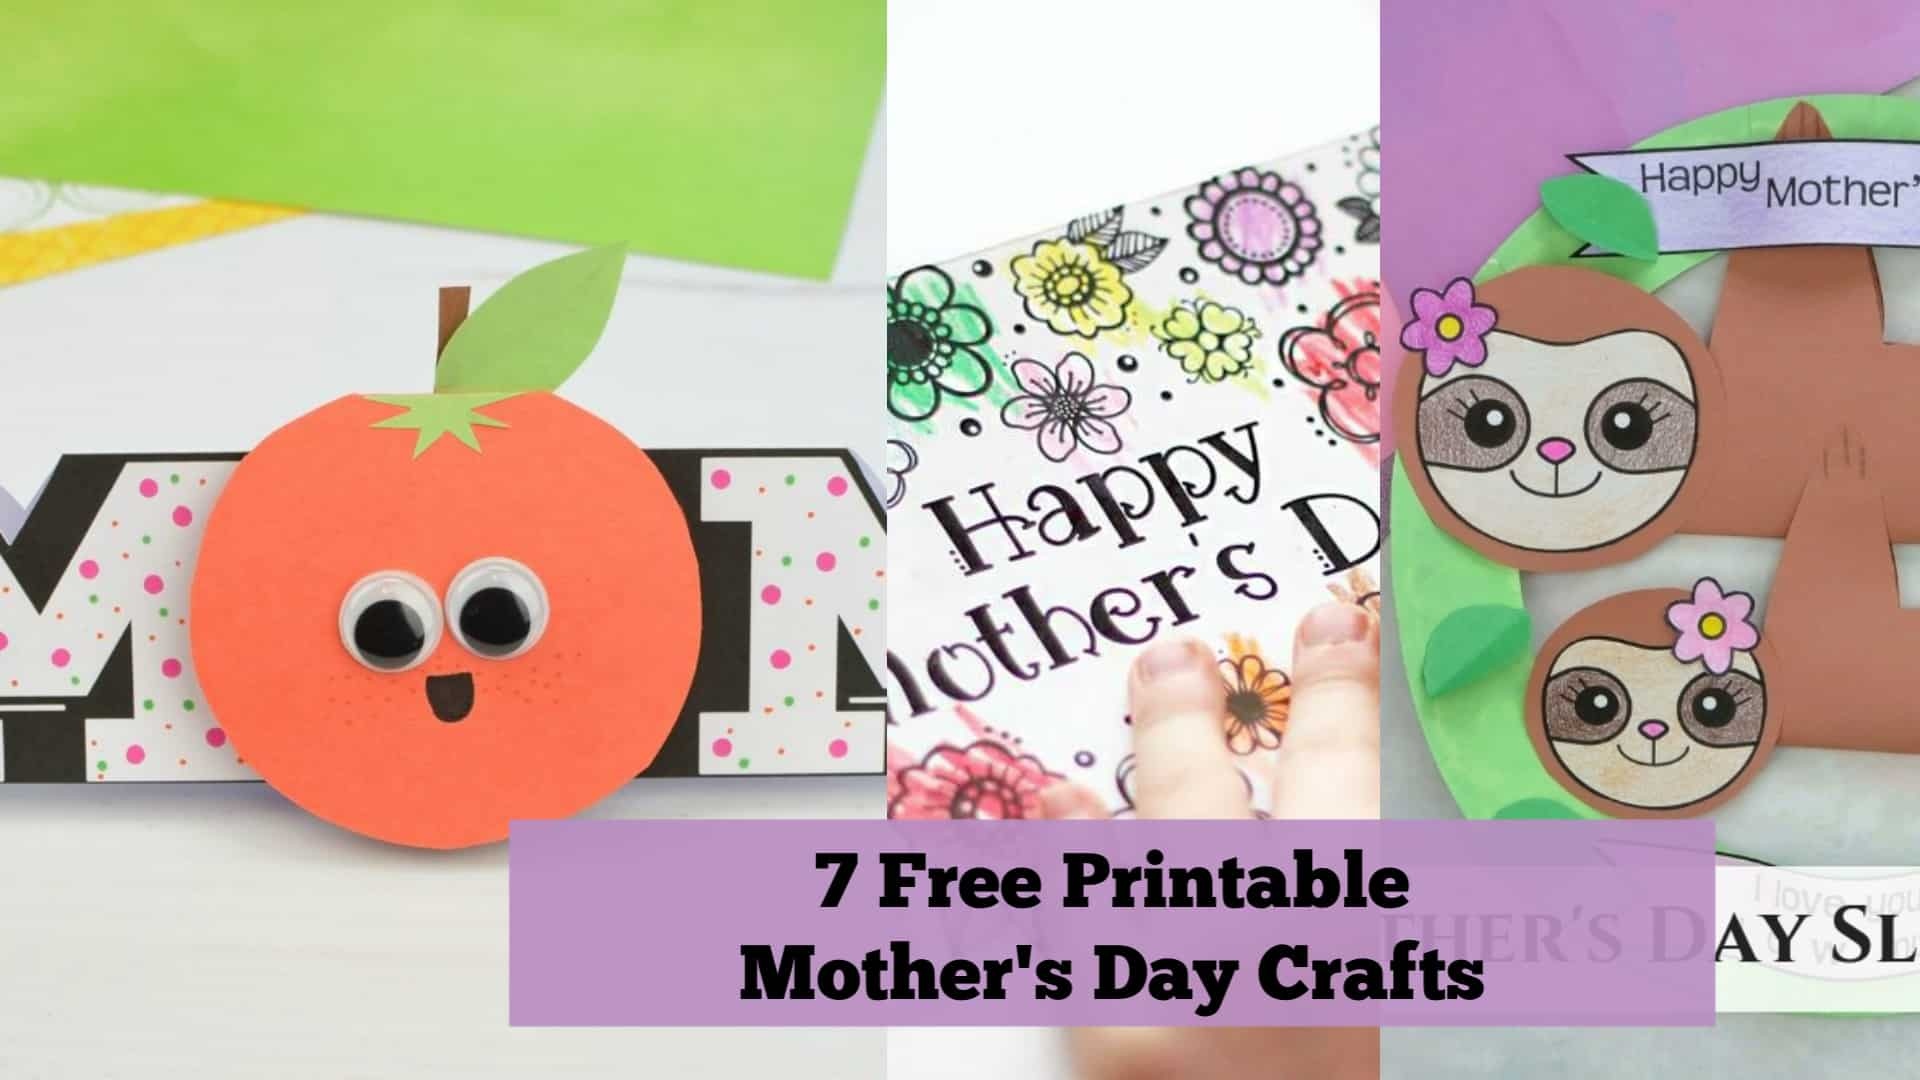 7 Free Printable Mother's Day Crafts for Kids